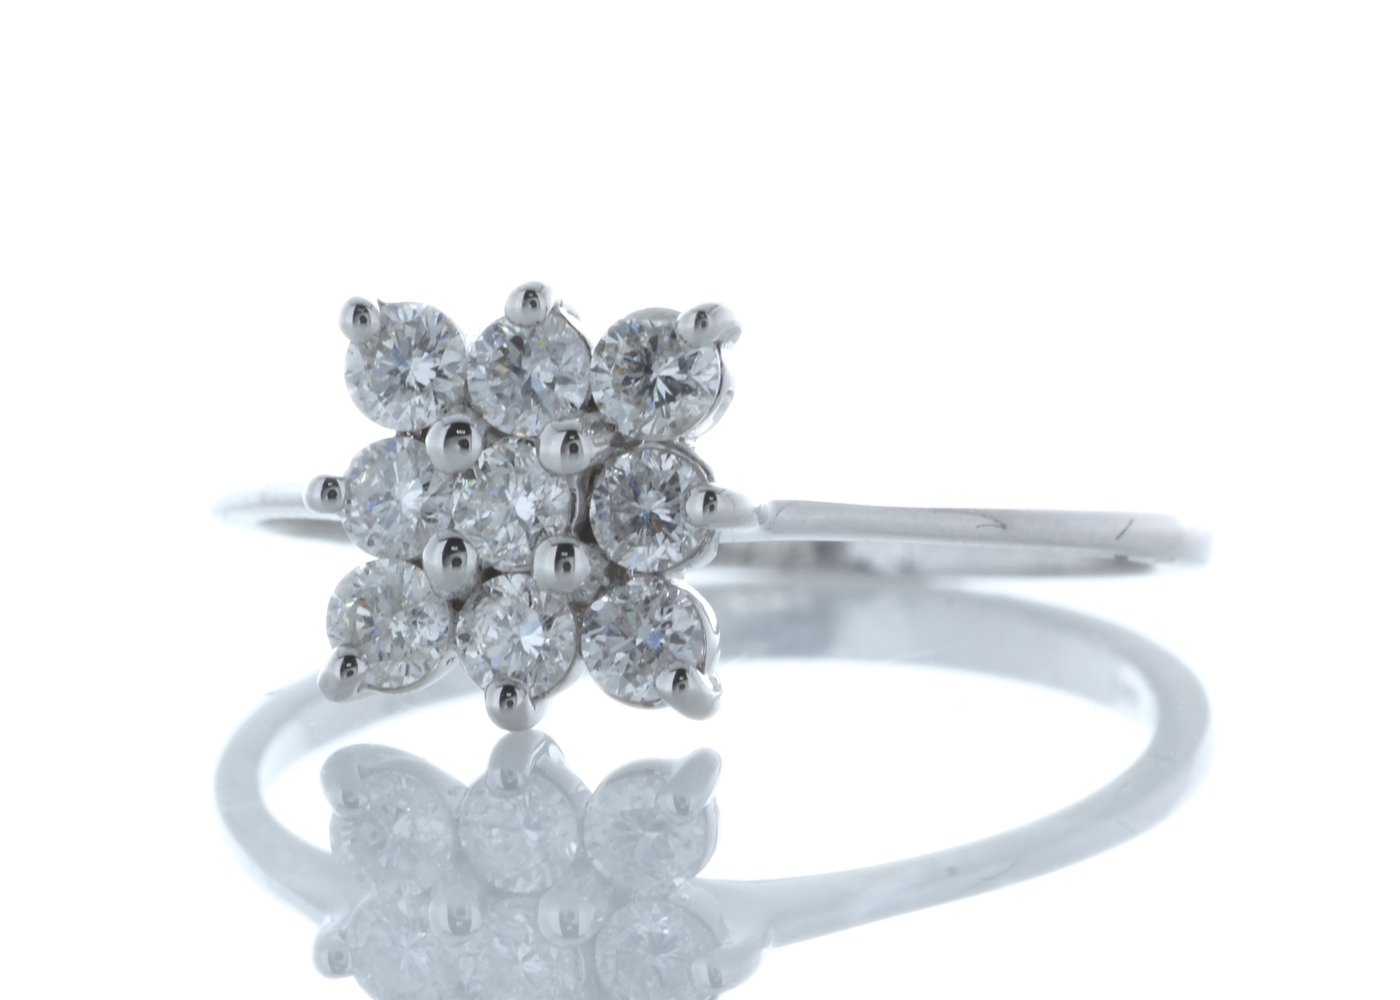 18ct White Gold Fancy Cluster Diamond Ring 0.45 Carats - Image 2 of 4